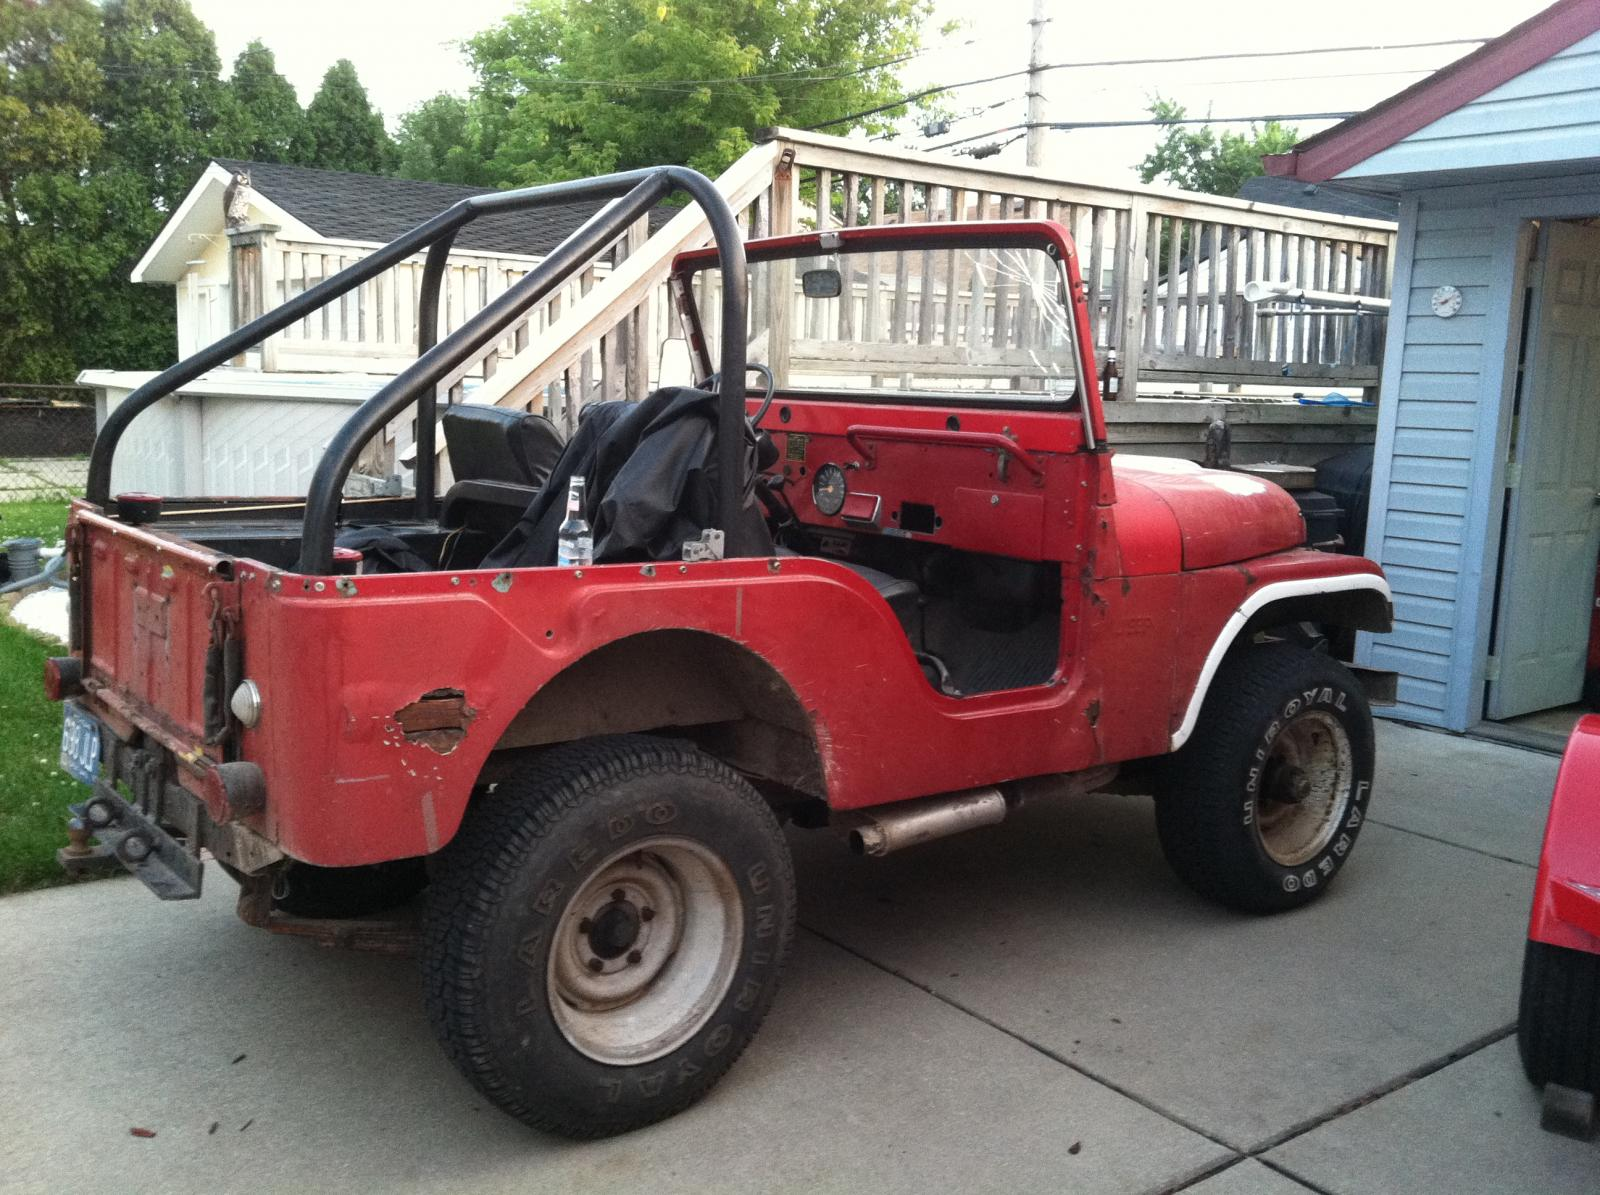 One of my other jeeps. 69 cj5. Built motor.